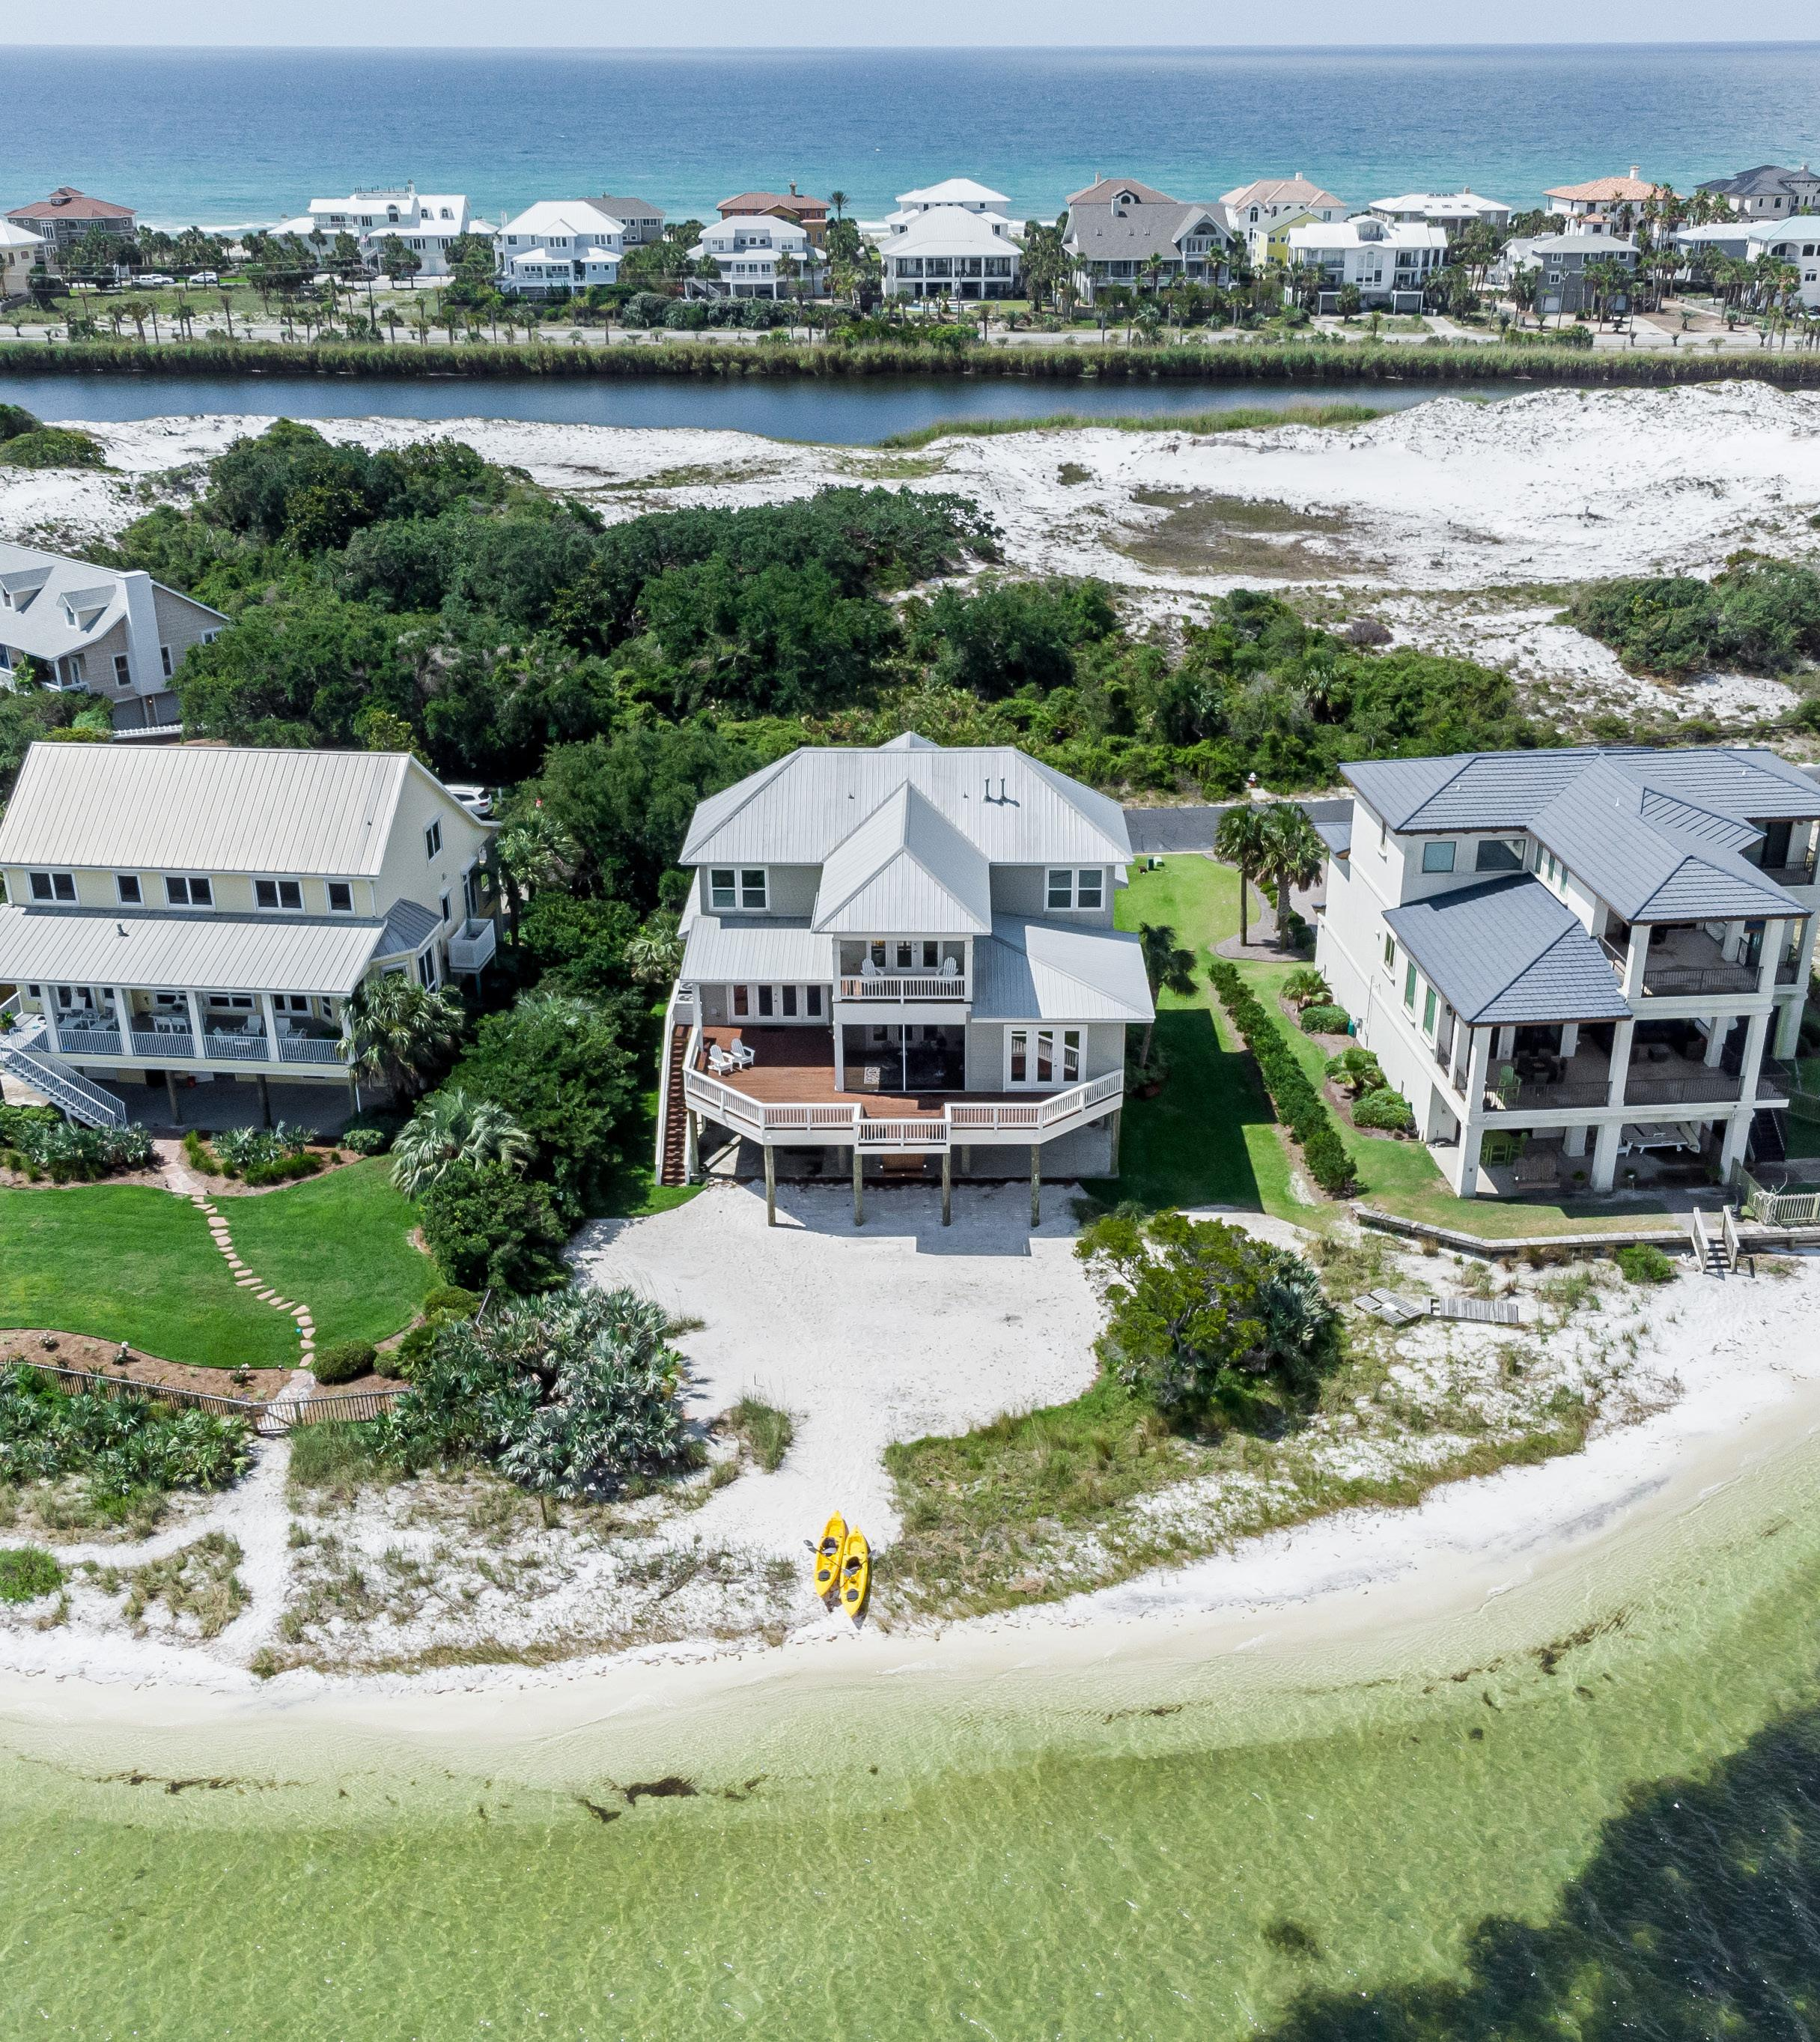 story from: 25 Sugarbowl Ln. Pensacola Beach, FL 32561